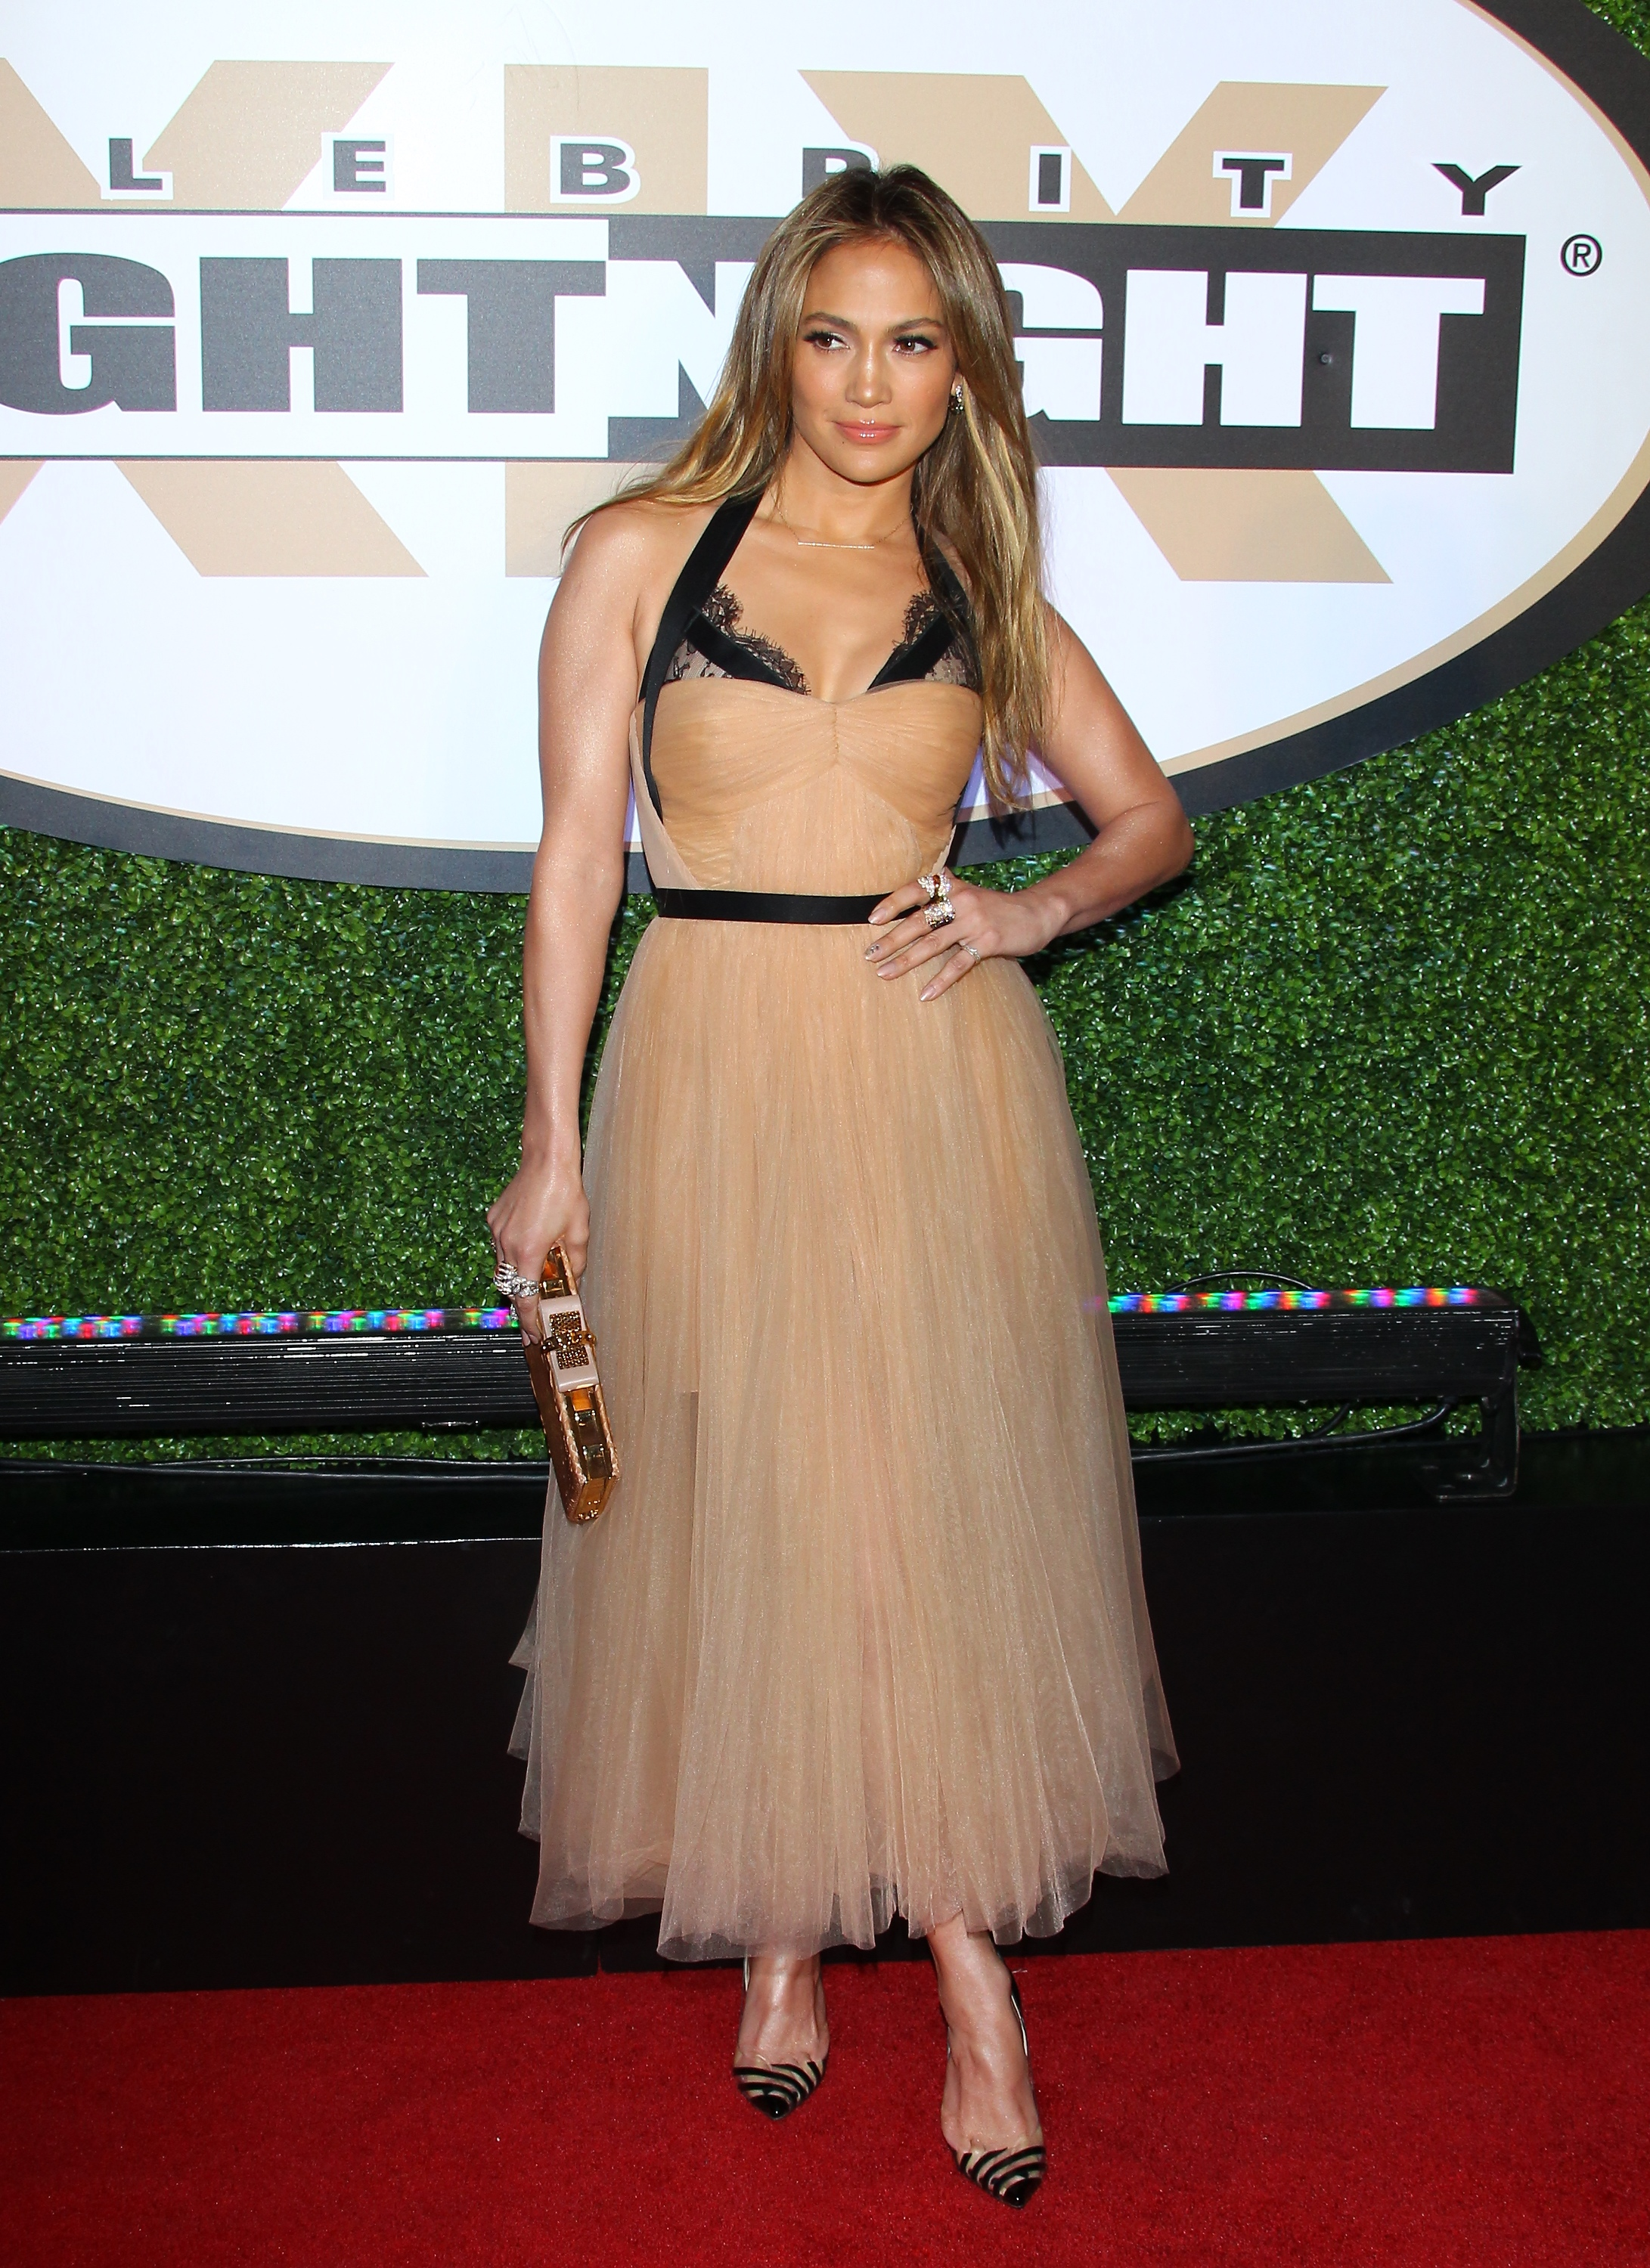 J Lo Gets Glamorous For a Charitable Night Out With Casper